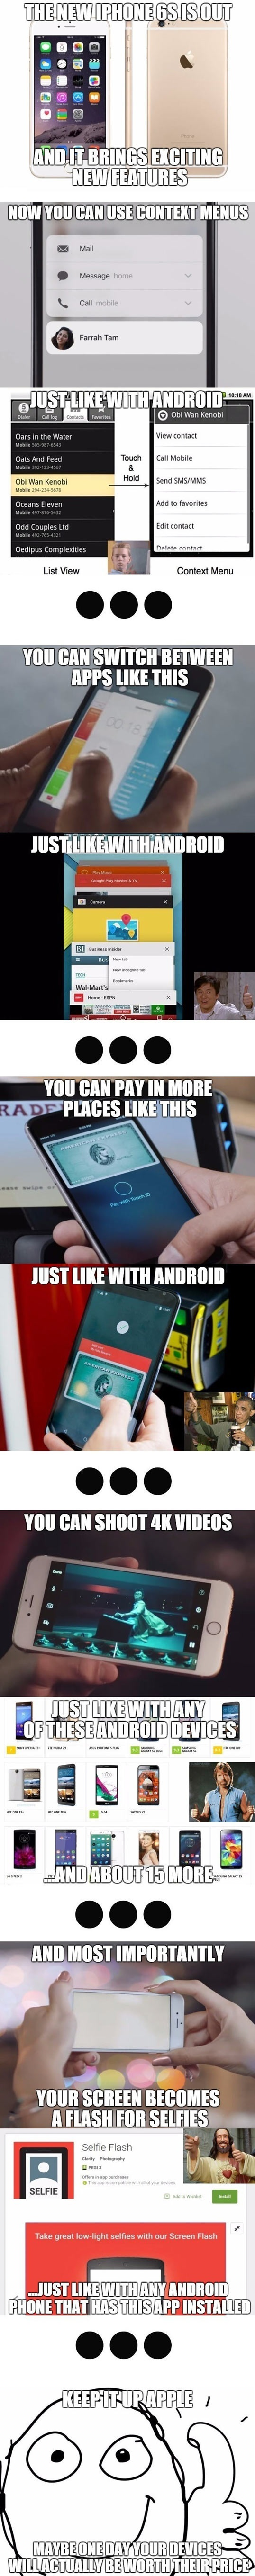 funny-Apple-new-phone-vs-Android